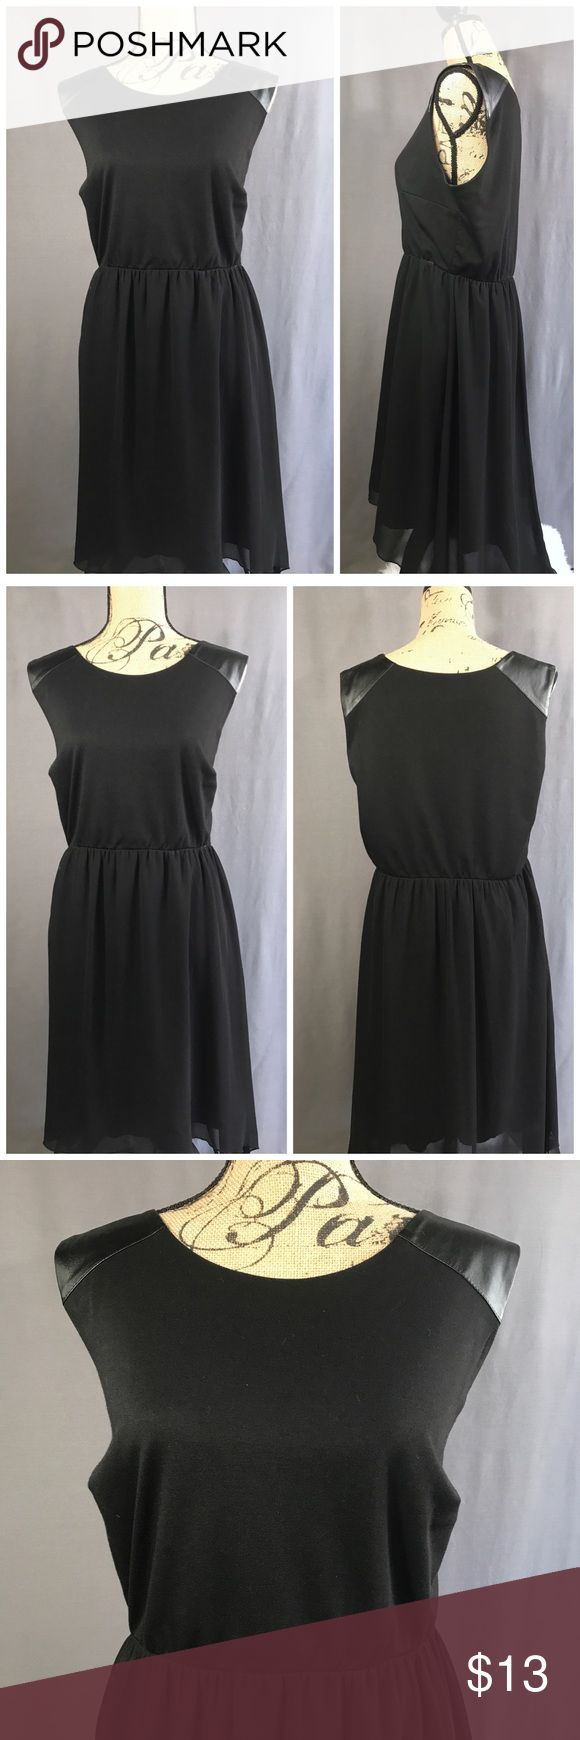 Black High-Low Dress with Chiffon Skirt & Leather Sweet Storm Black Dress with Chiffon high-low skirt overlay, and black faux leather epaulet detail. Fully lined, elastic hidden waistband, Sweet Storm Dresses High Low